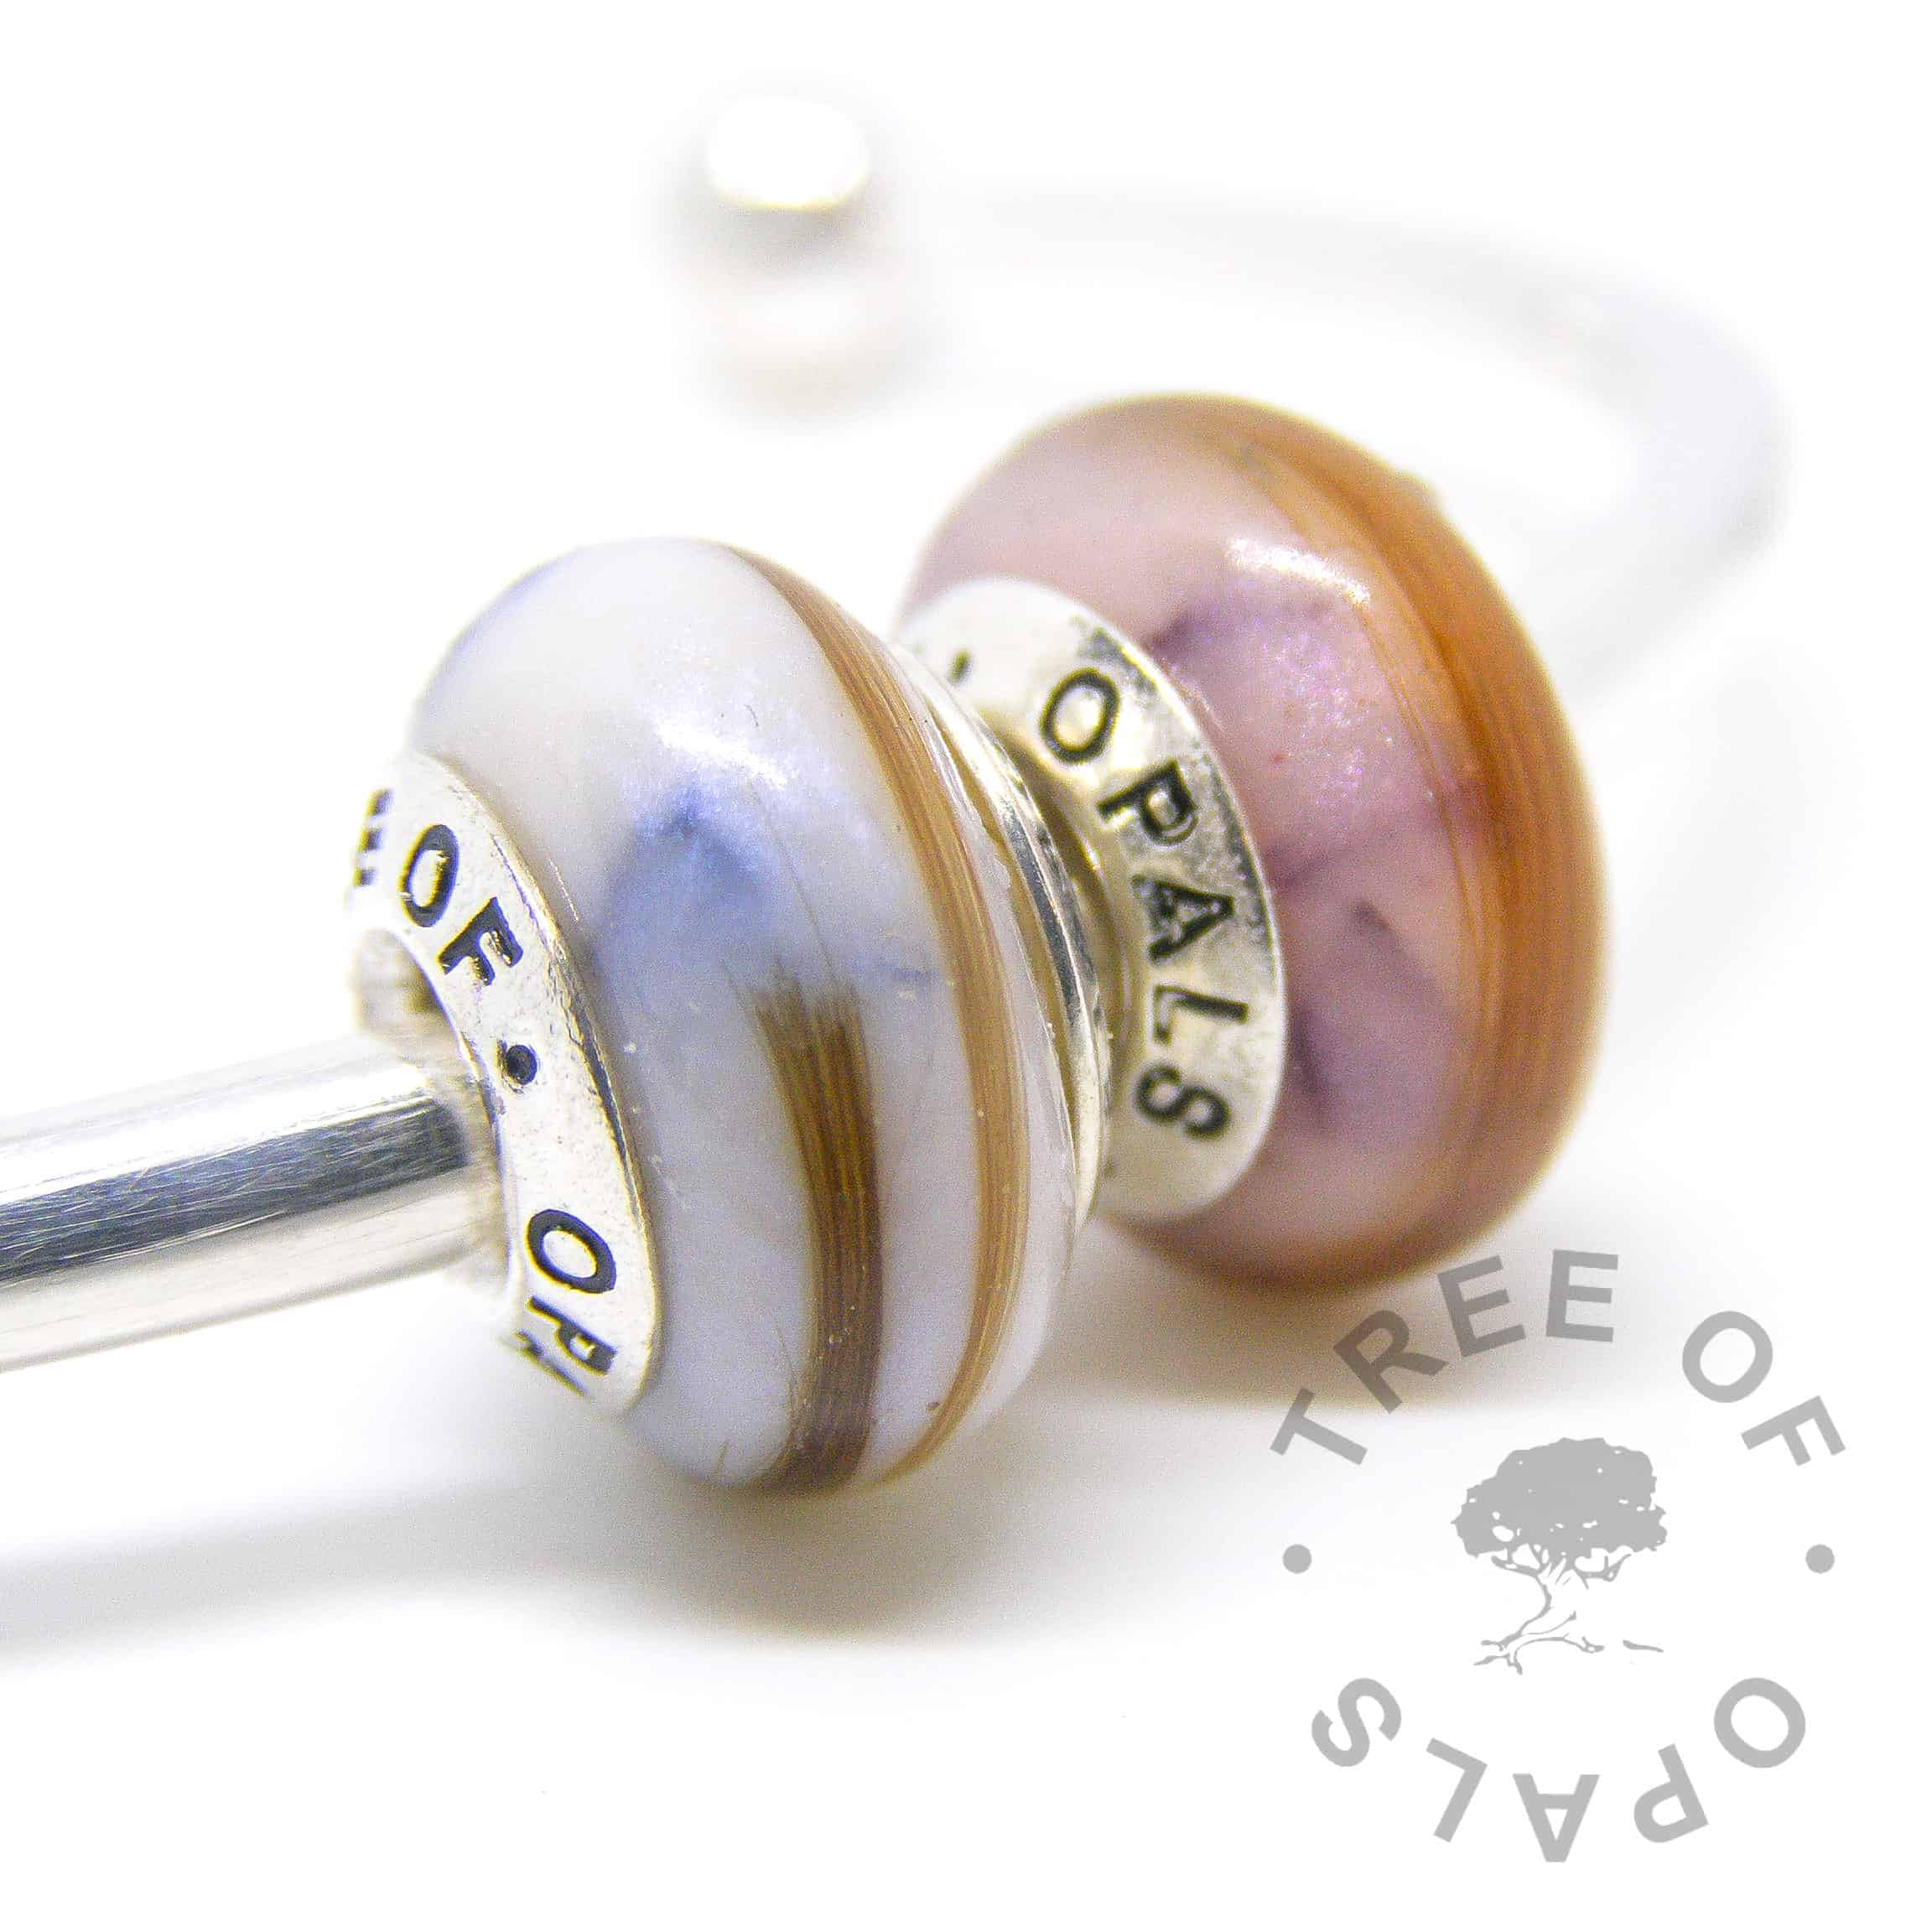 breastmilk and hair duo with shimmers and birthstones sapphire and amethyst and breast milk in resin with a solid sterling silver Tree of Opals branded core, September birthstone and February birthstone